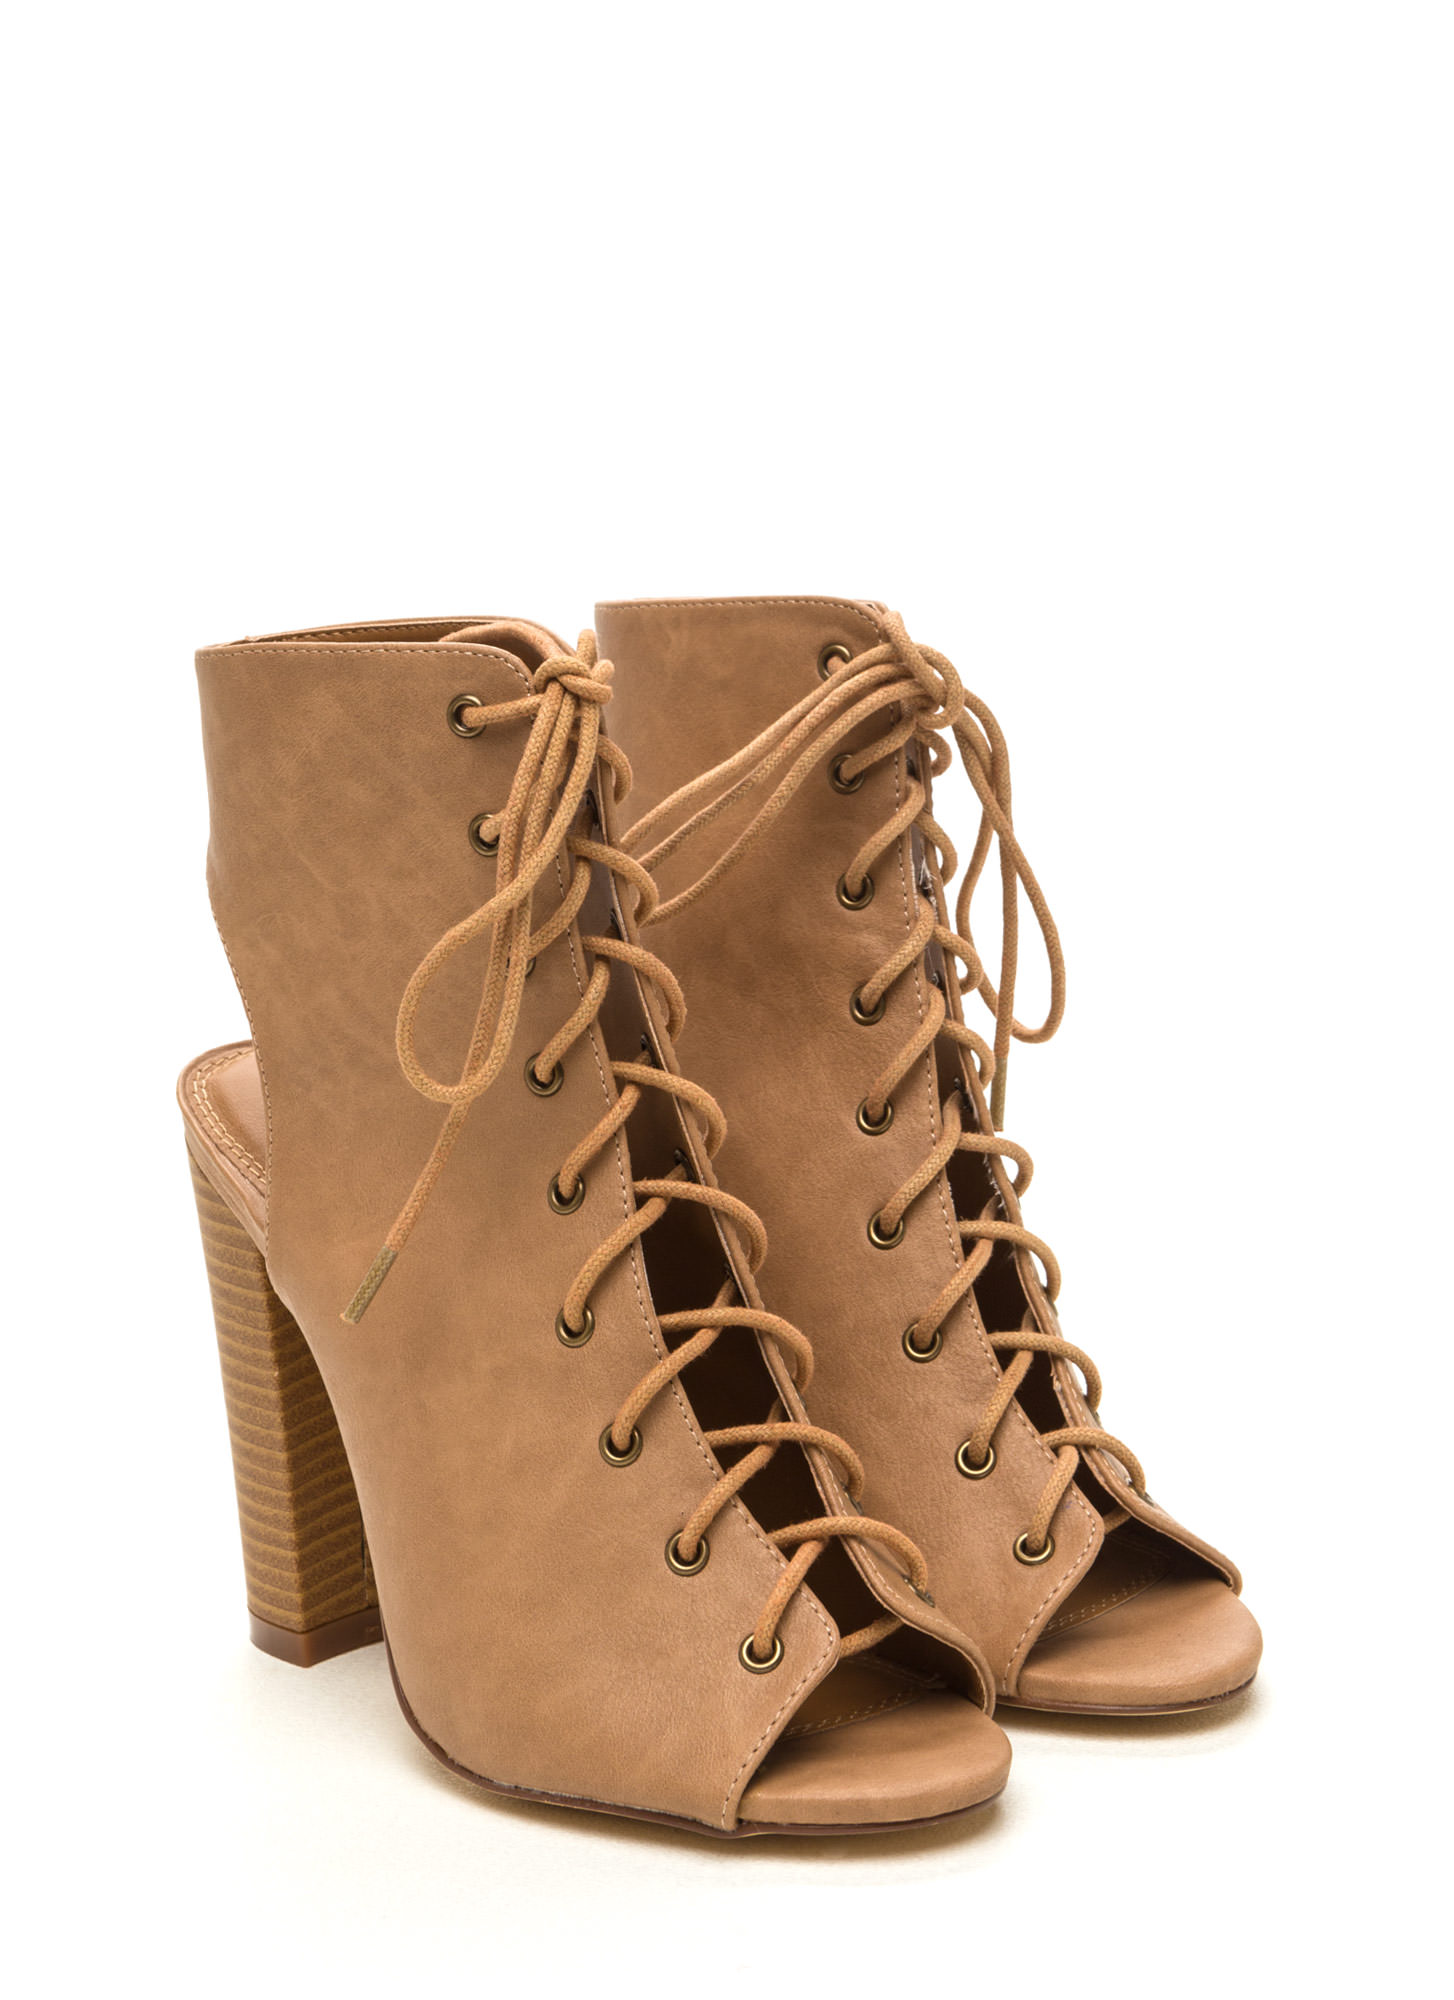 Back It Up Laced Cut-Out Booties BEIGE